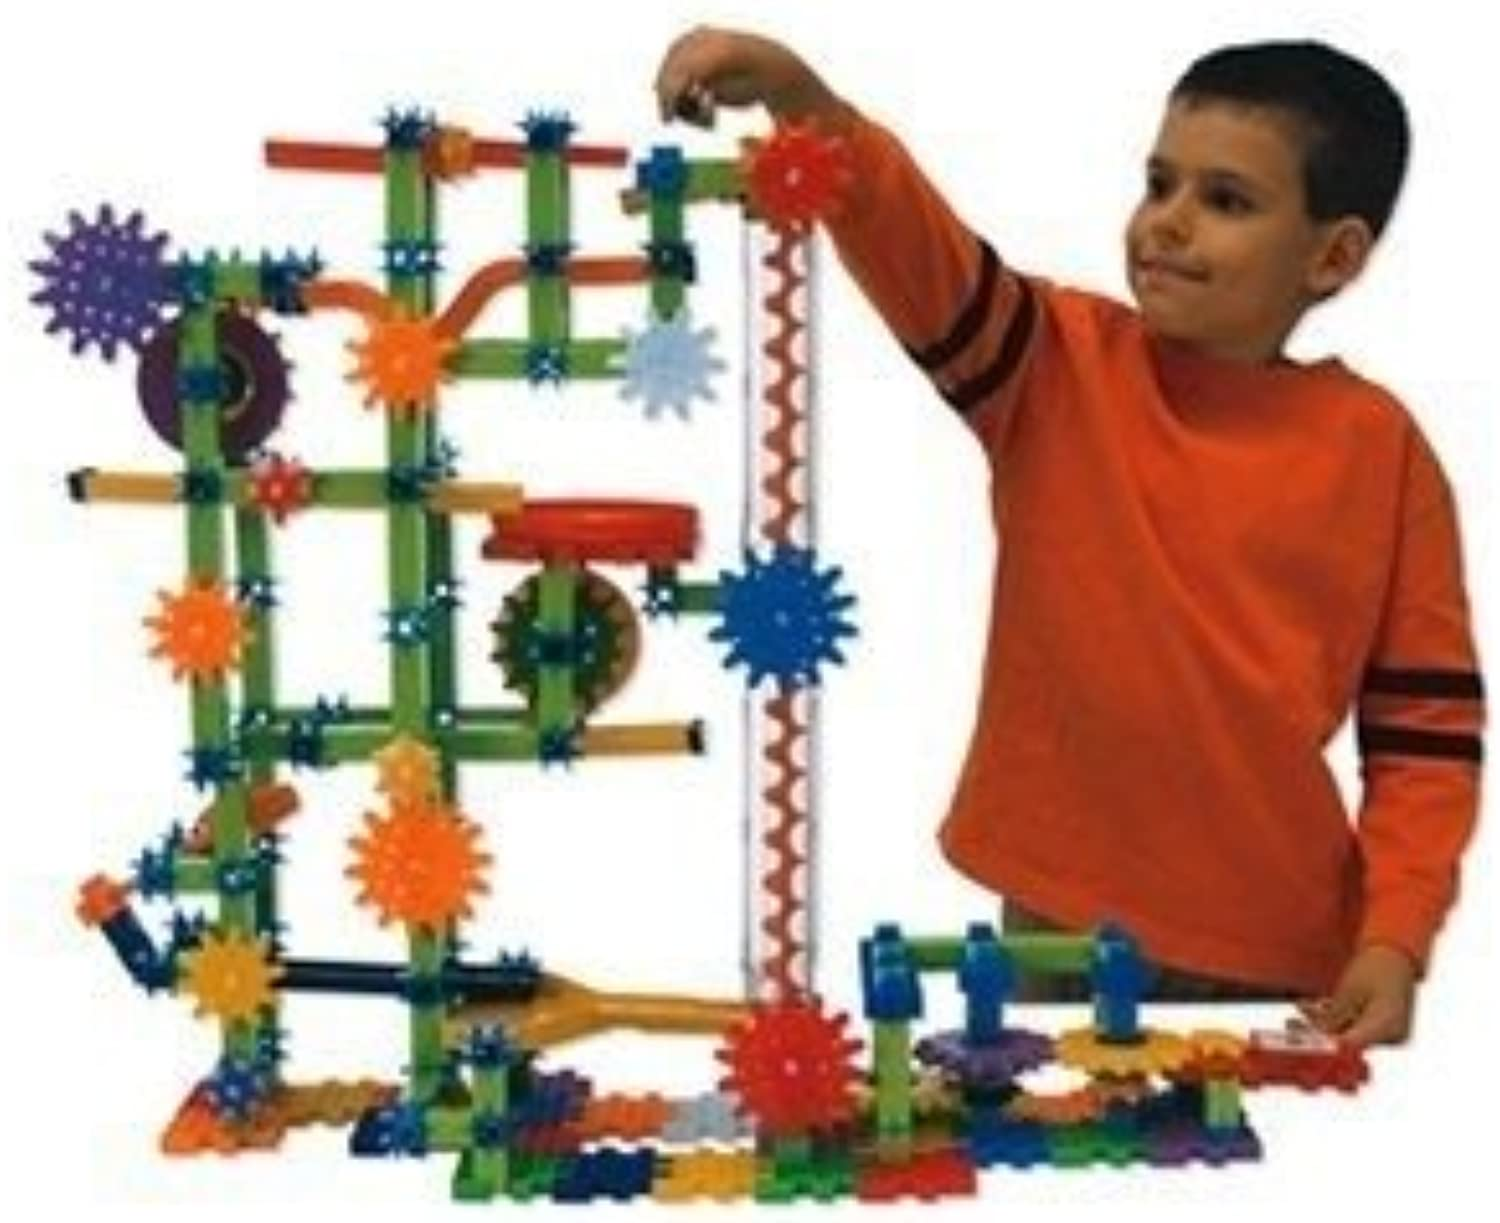 Learning Journey with Power Lifter Techno Gears - Marble Mania Extreme by LEARNING JOURNEY